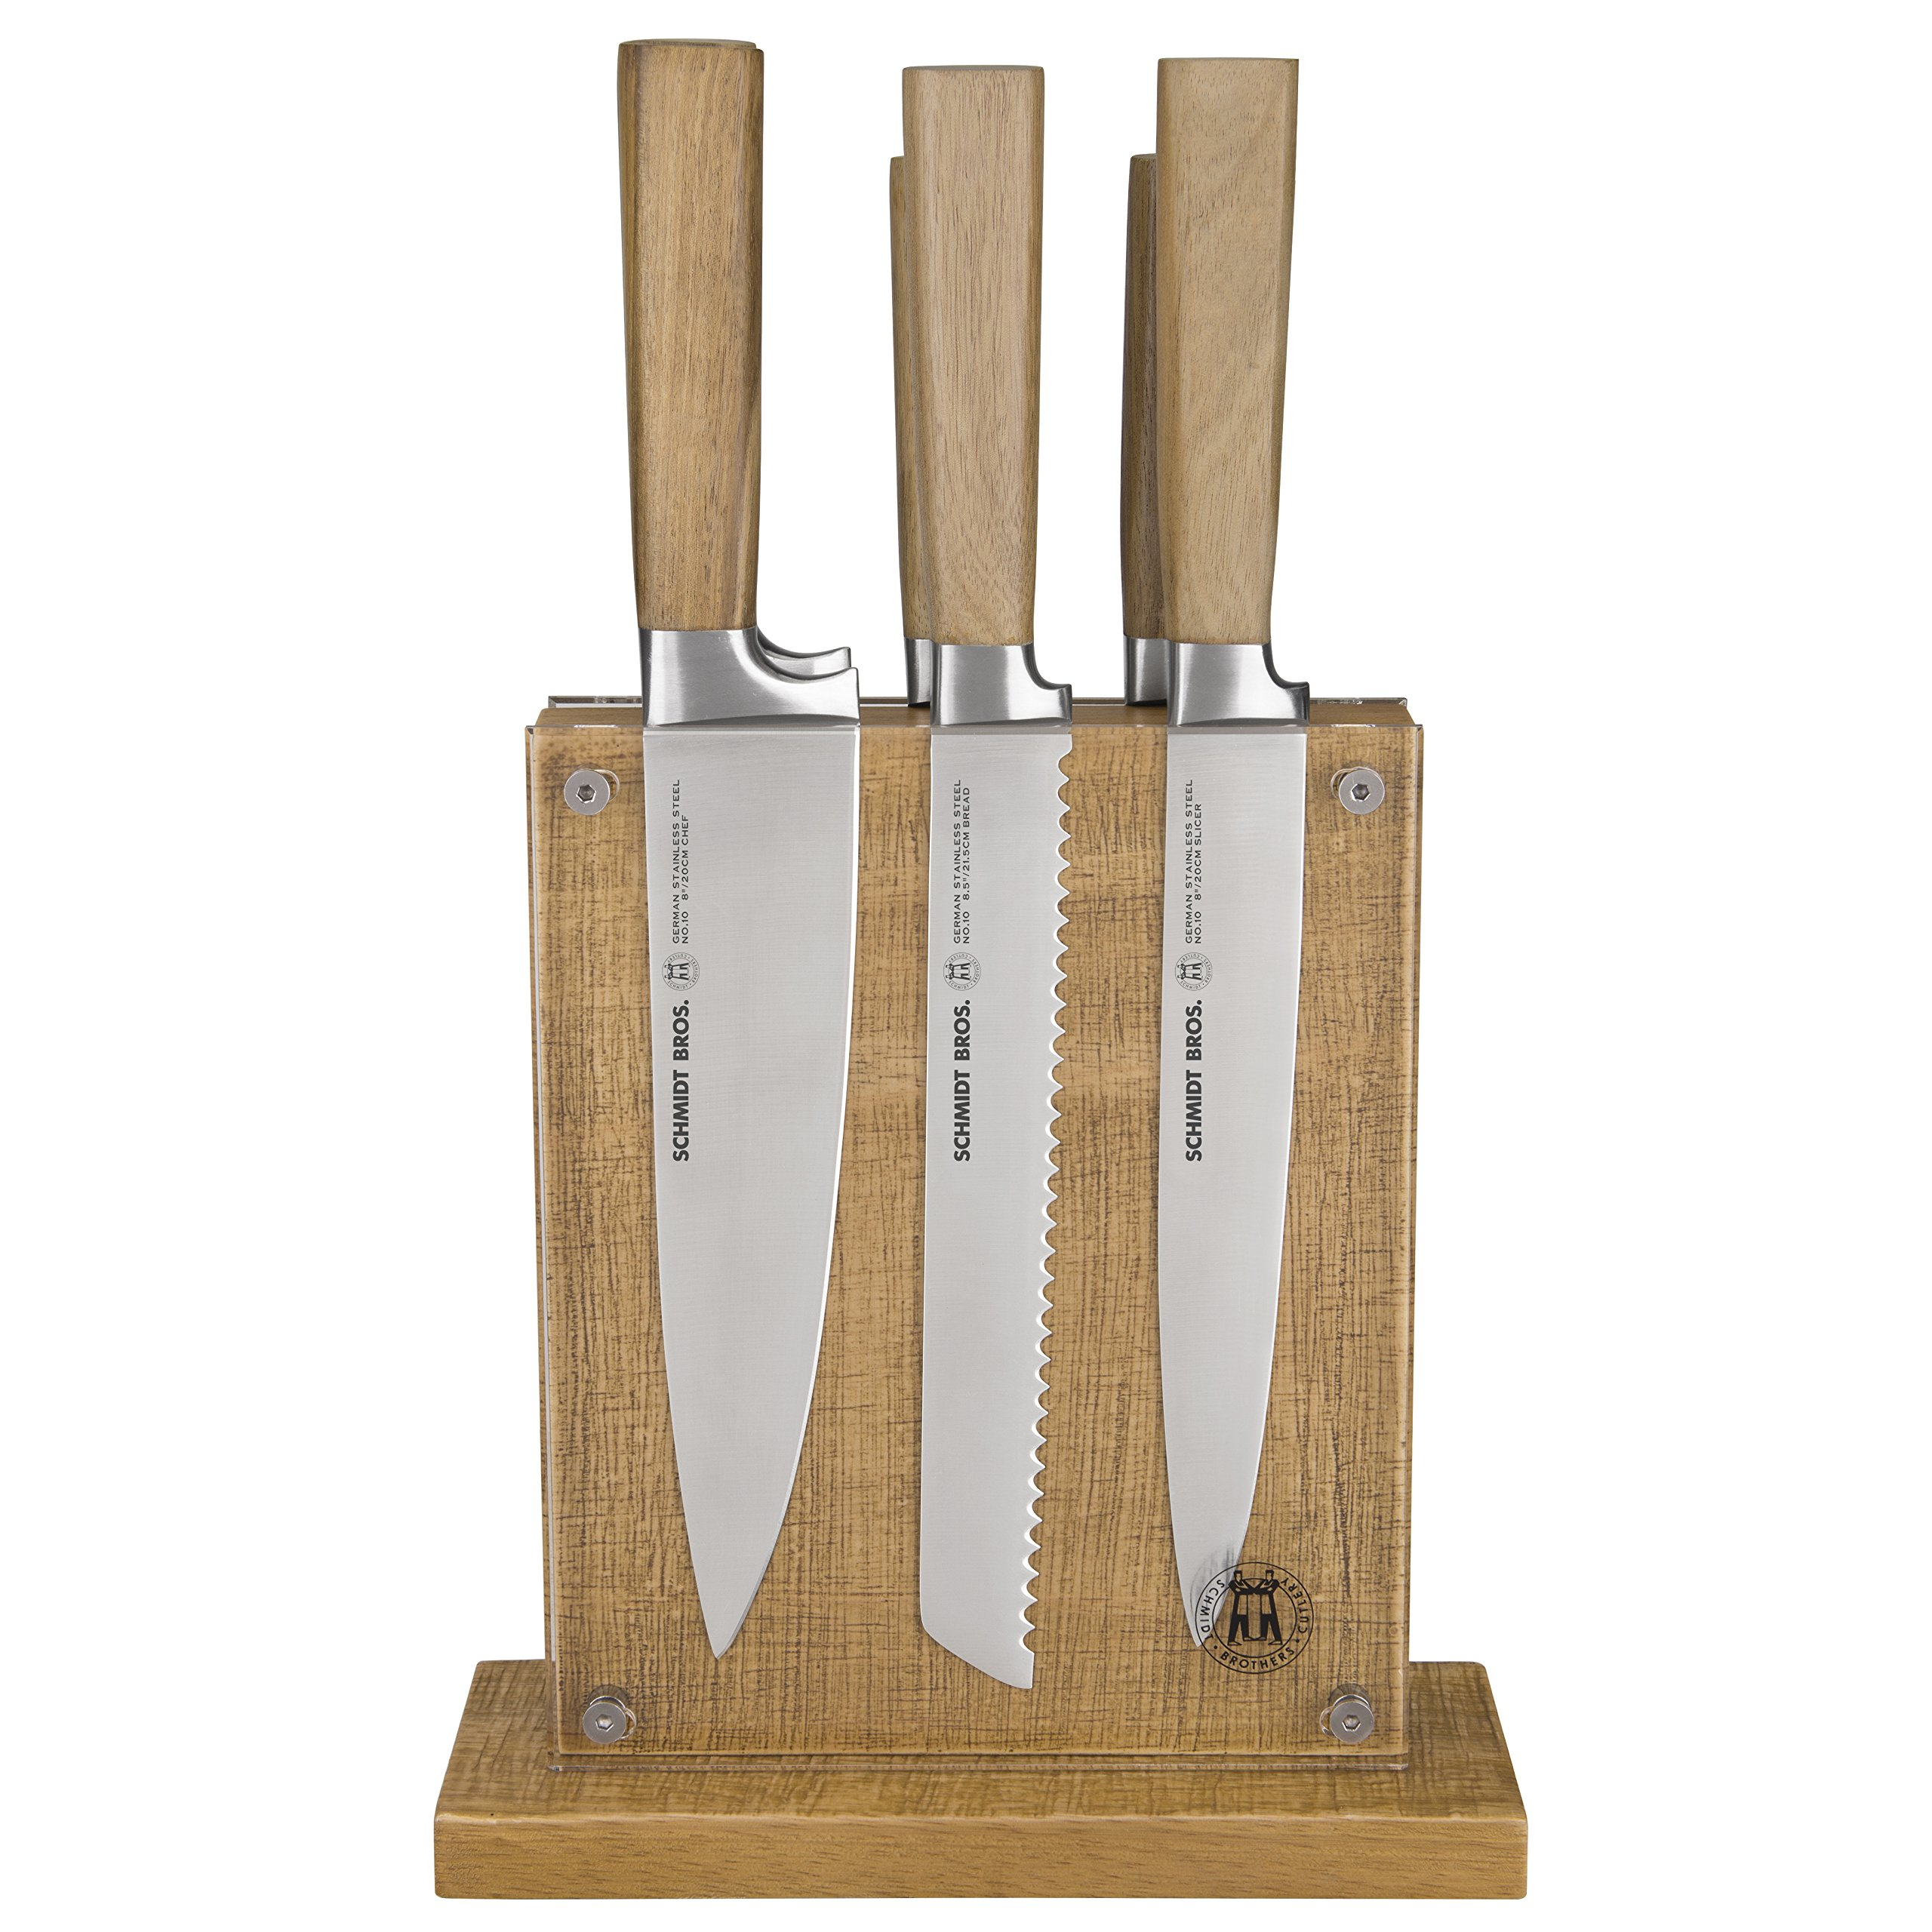 THE SCHMIDT BROTHERS 7 Piece Hudson Home Group No 10 Farmhouse Knife Set, Stainless Steel